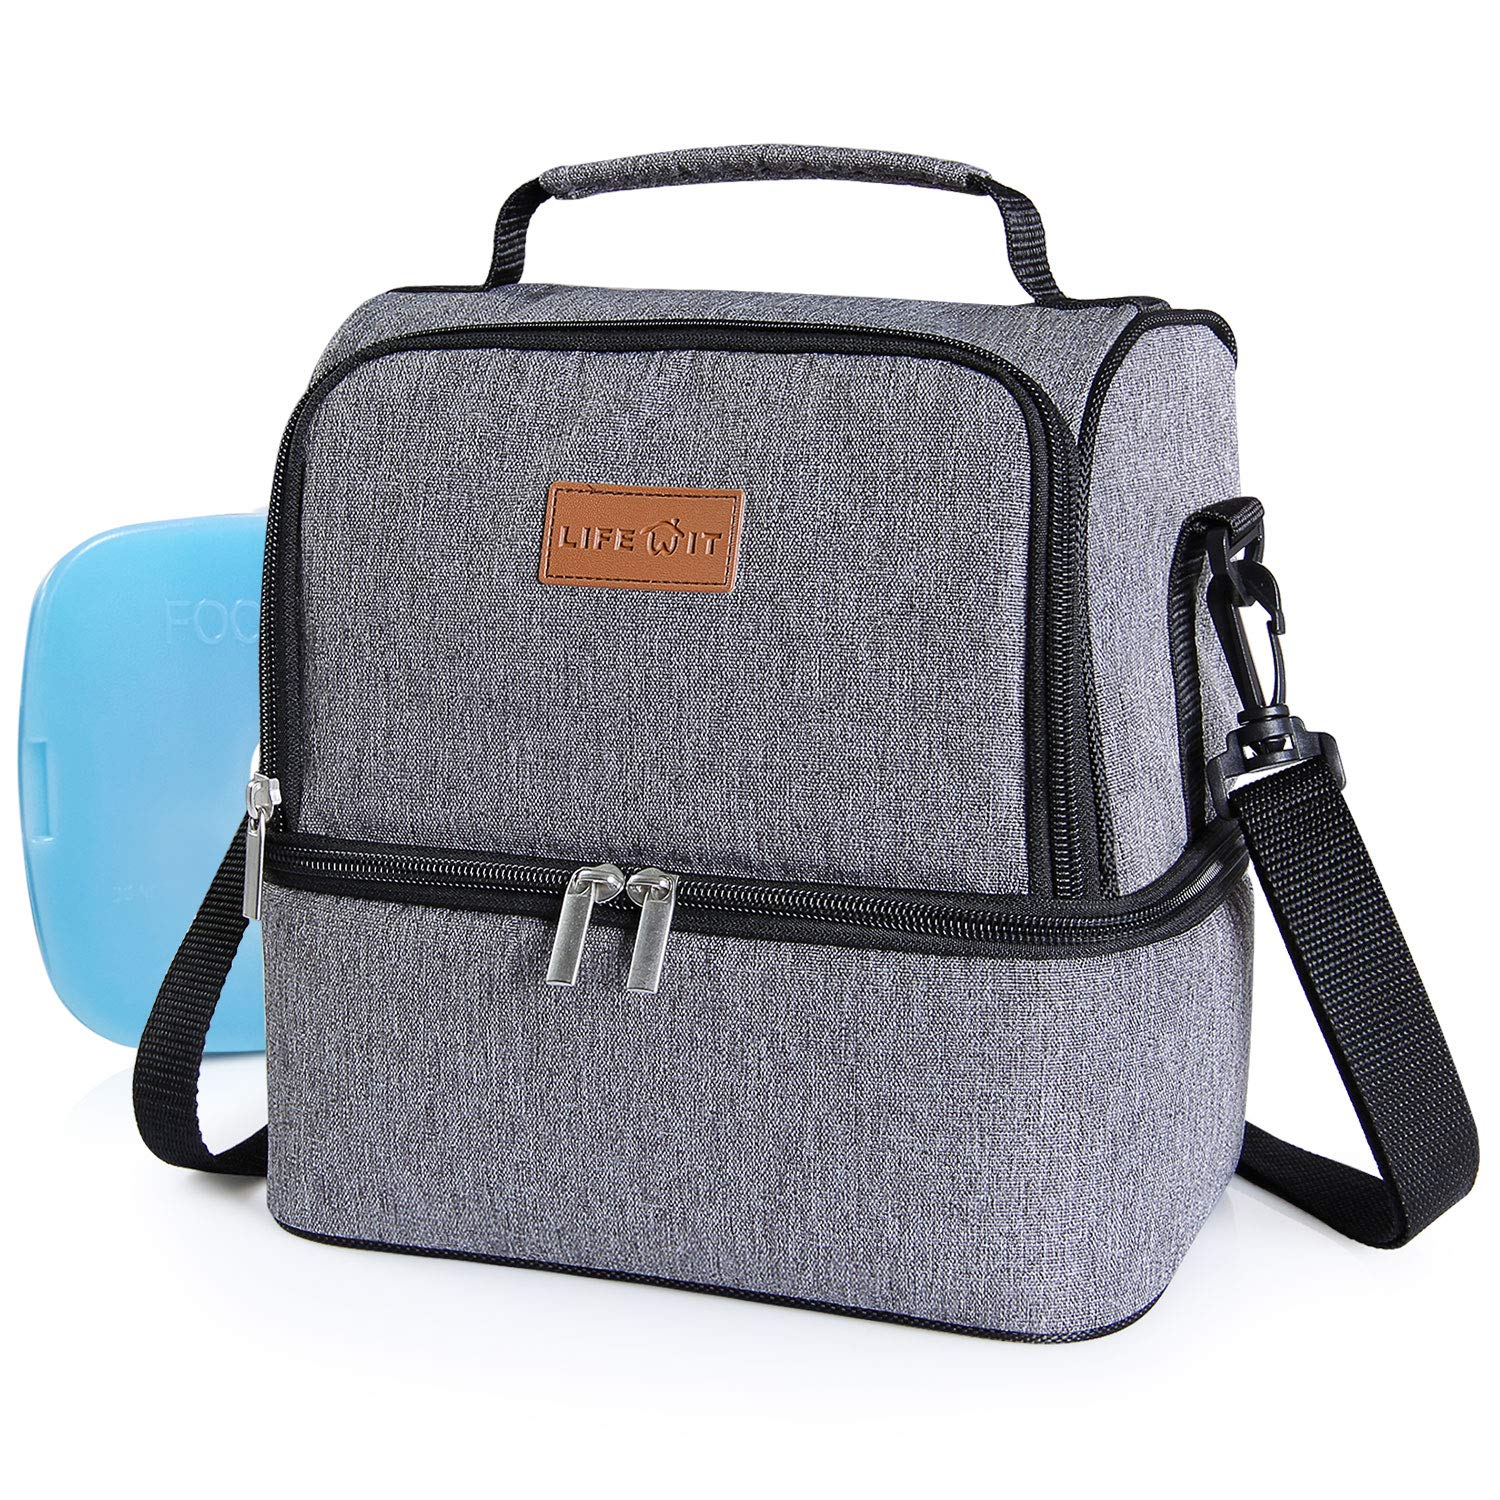 Lifewit Insulated Lunch Box Lunch Bag for Adults/Men/Women/Kids, Water-Resistant Cooler Lunchbag for Work/School/Meal Prep, Double Section, 7L, Grey [ with Blue Ice Pack ]